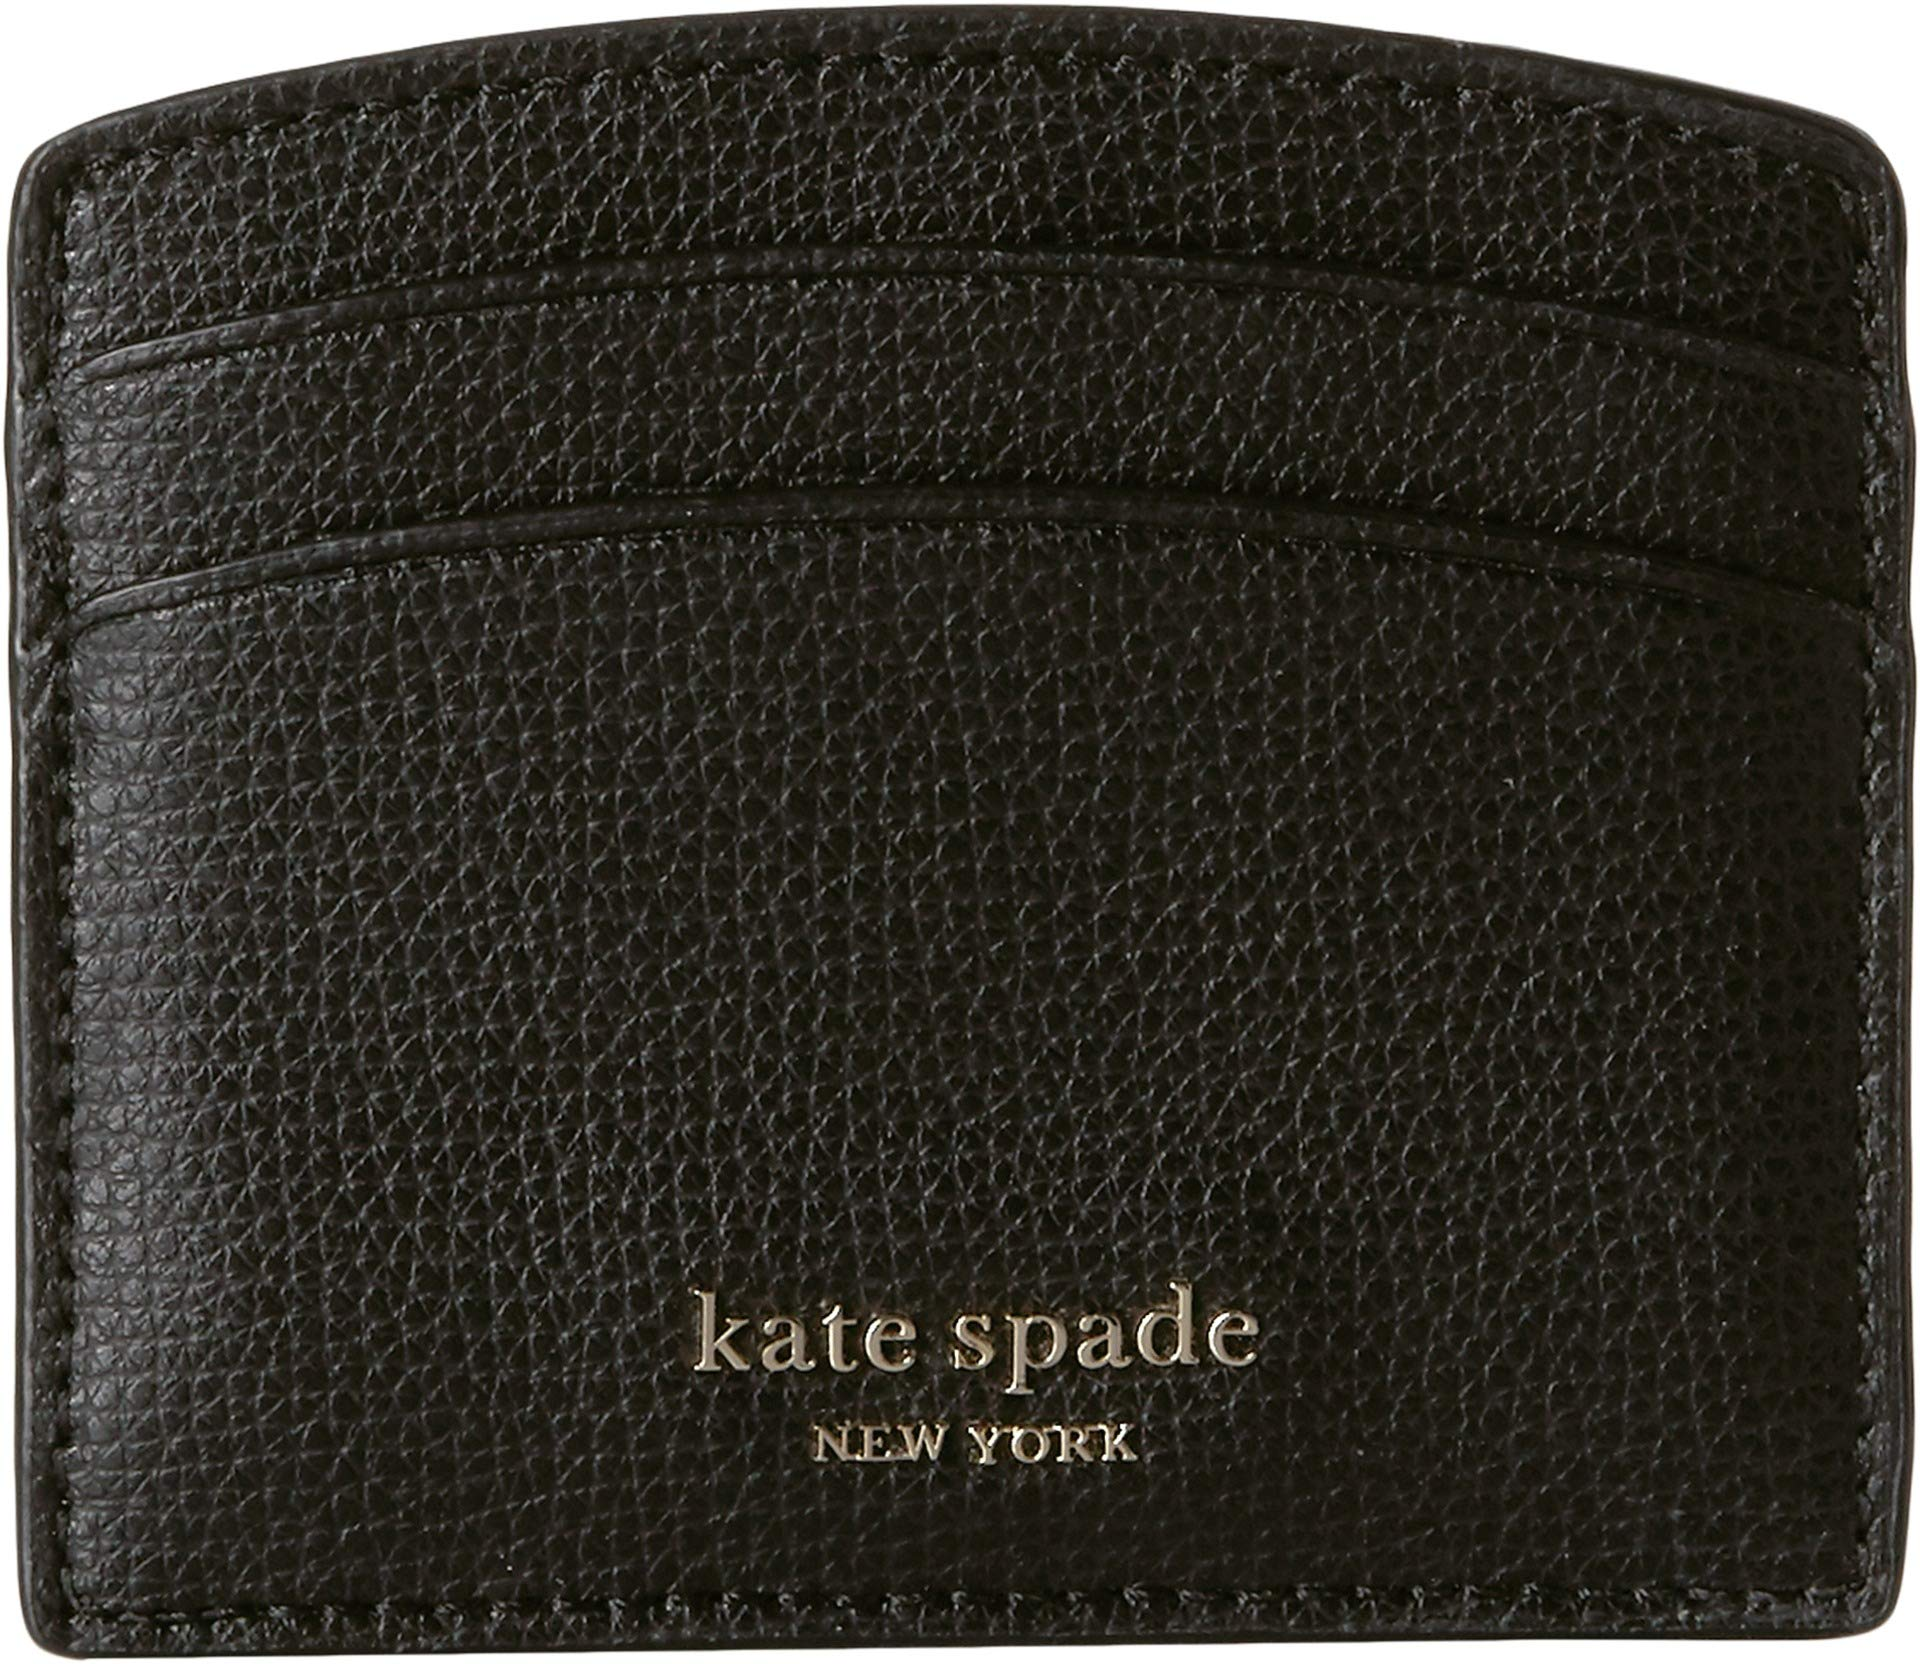 Kate Spade New York Women's Sylvia Card Holder, Black, One Size by Kate Spade New York